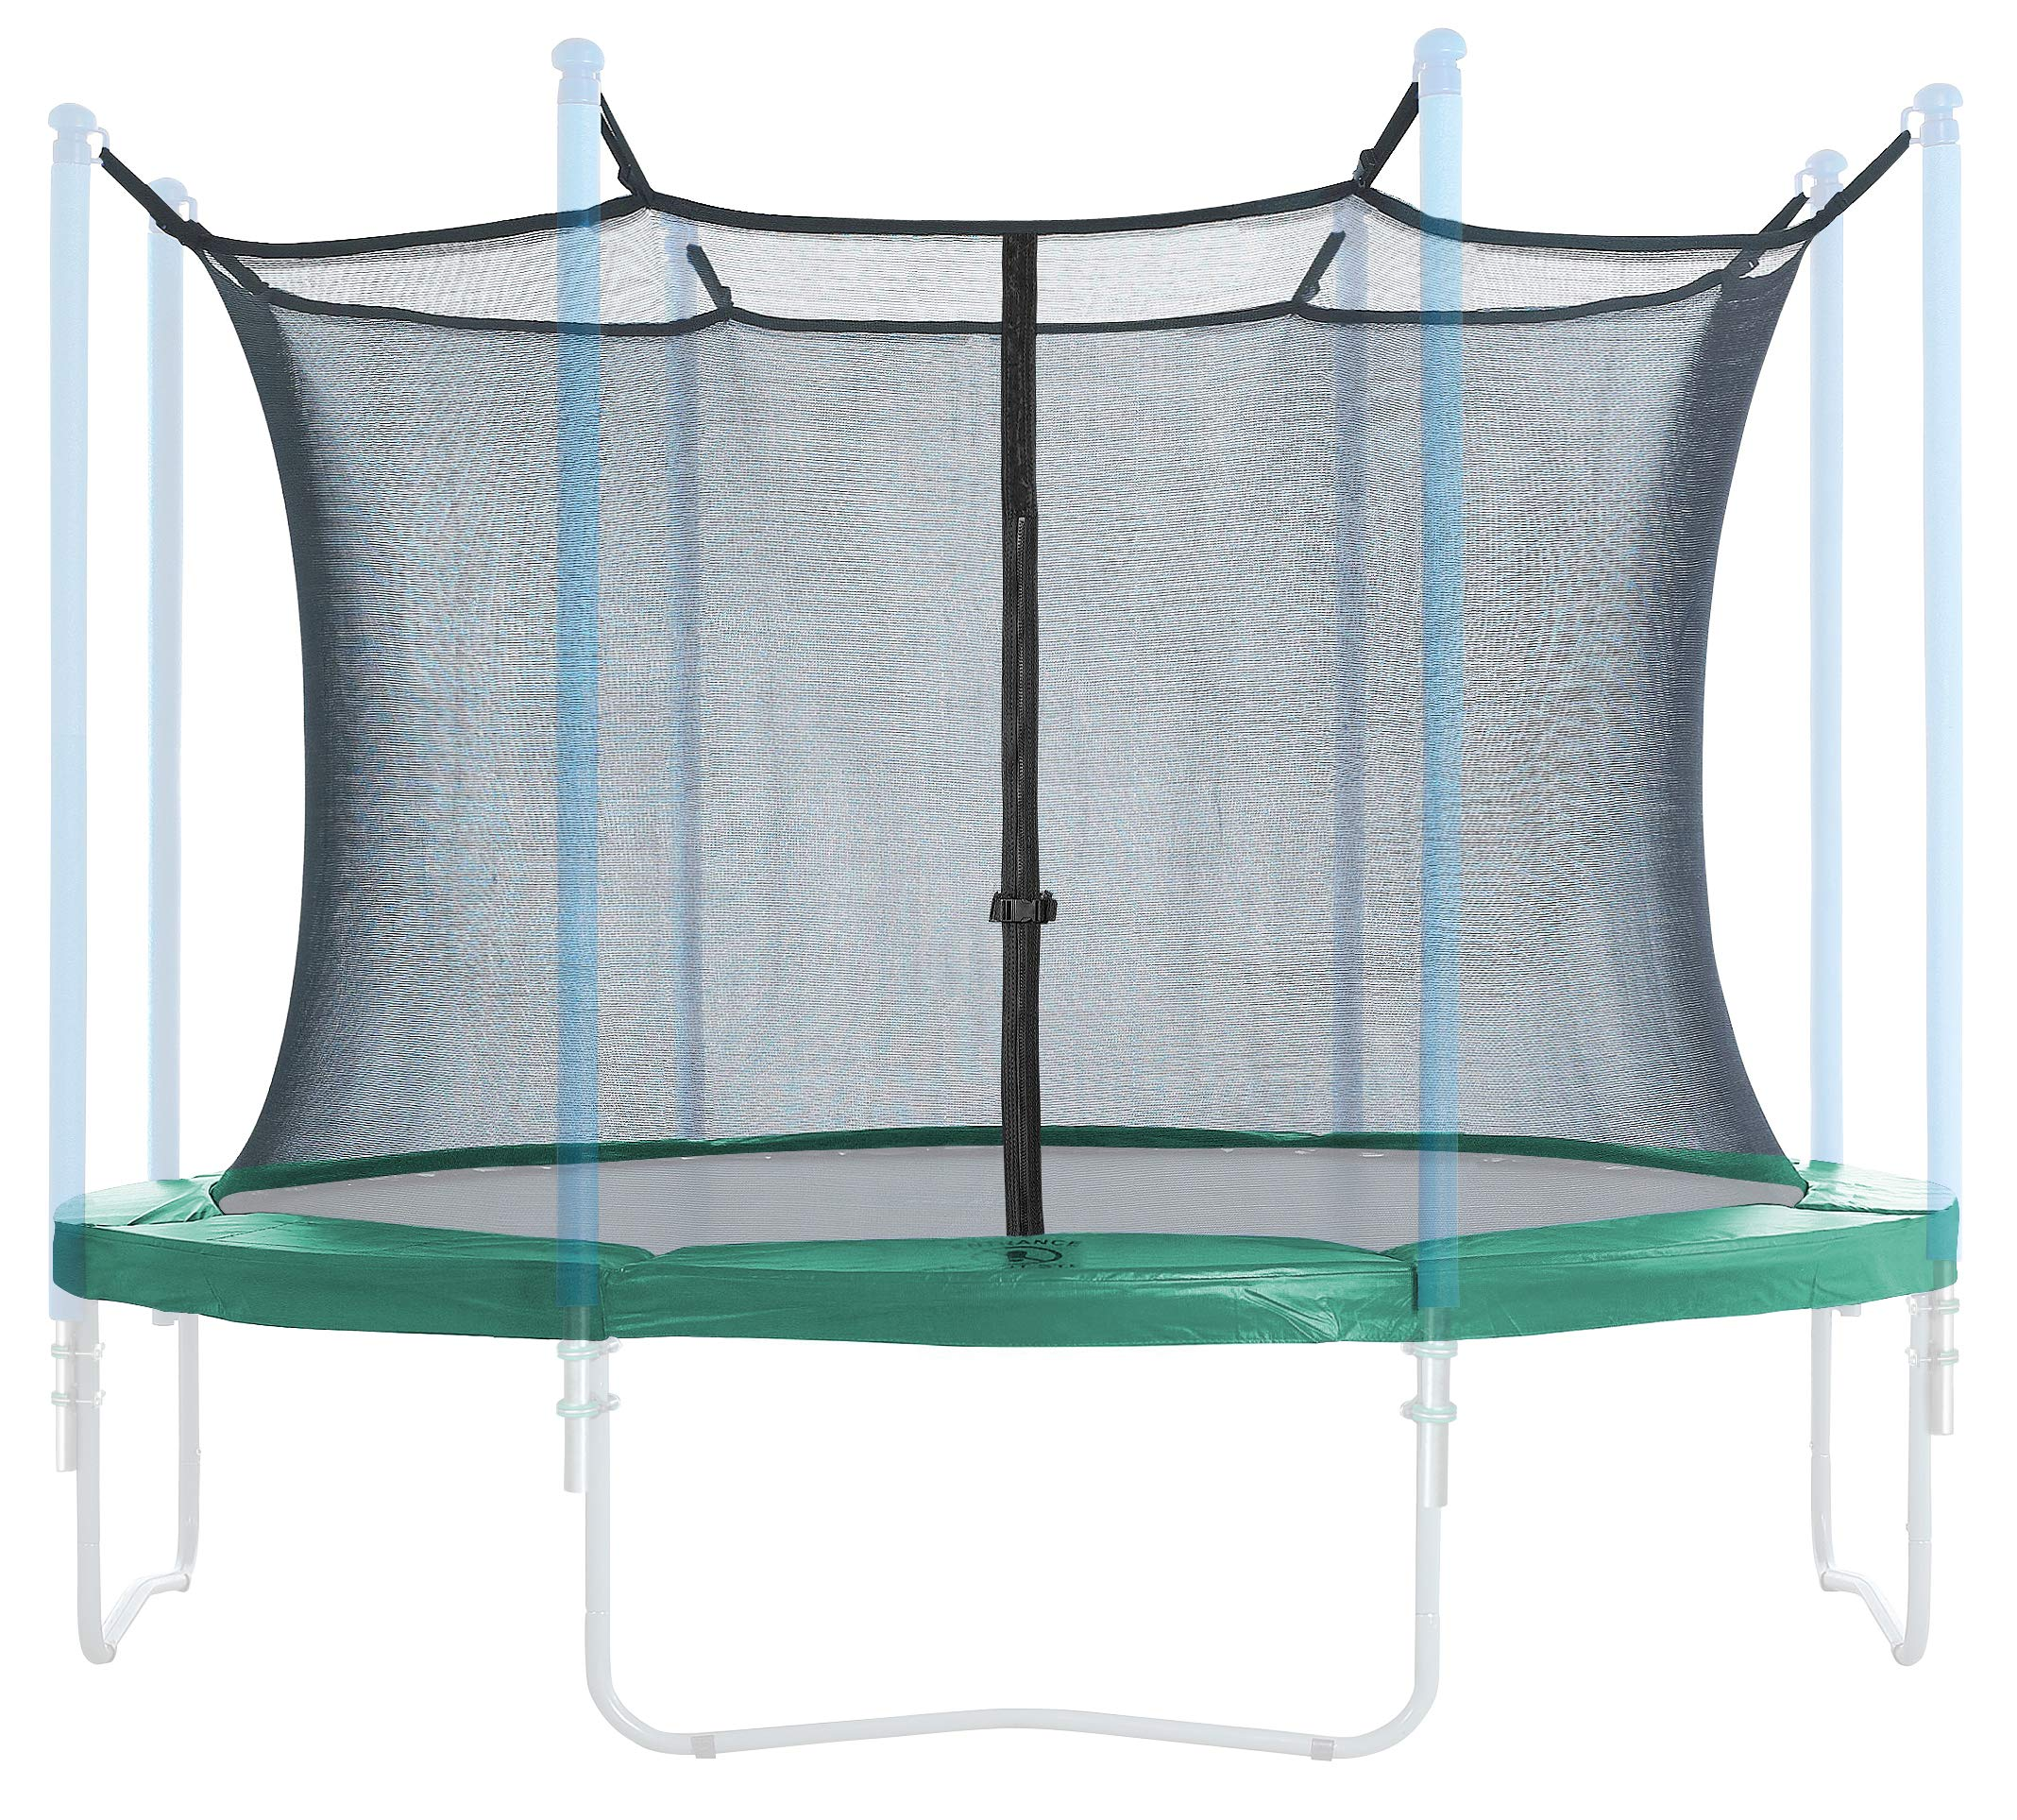 Trampoline Enclosure and Safety Pad Set | Round Frame Safety pad 15 Foot | 6 Poles or 3 Arches | Inside Enclosure Safety net |Spring Cover |Universal Fit | Outdoor Trampoline | Green Pad ♂